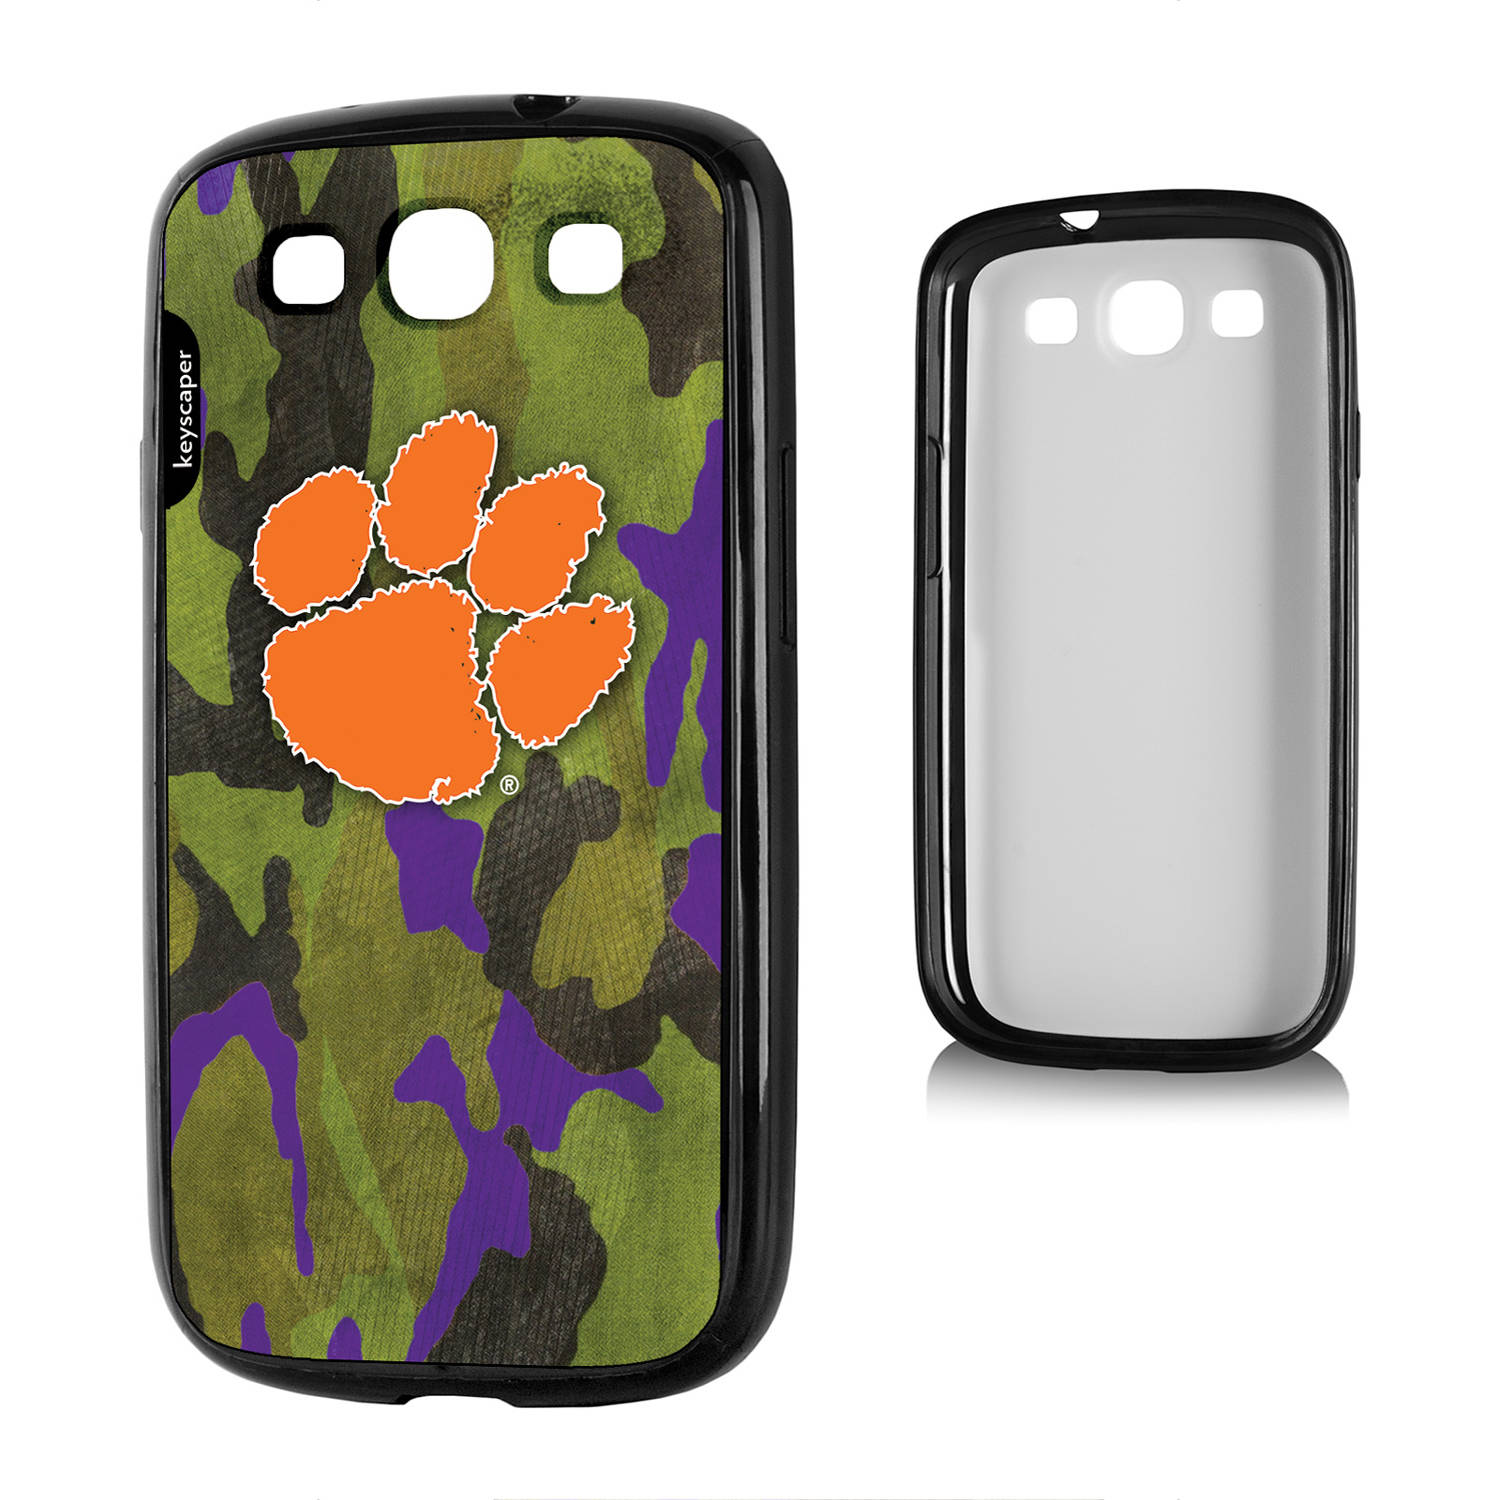 Clemson Tigers Galaxy S3 Bumper Case